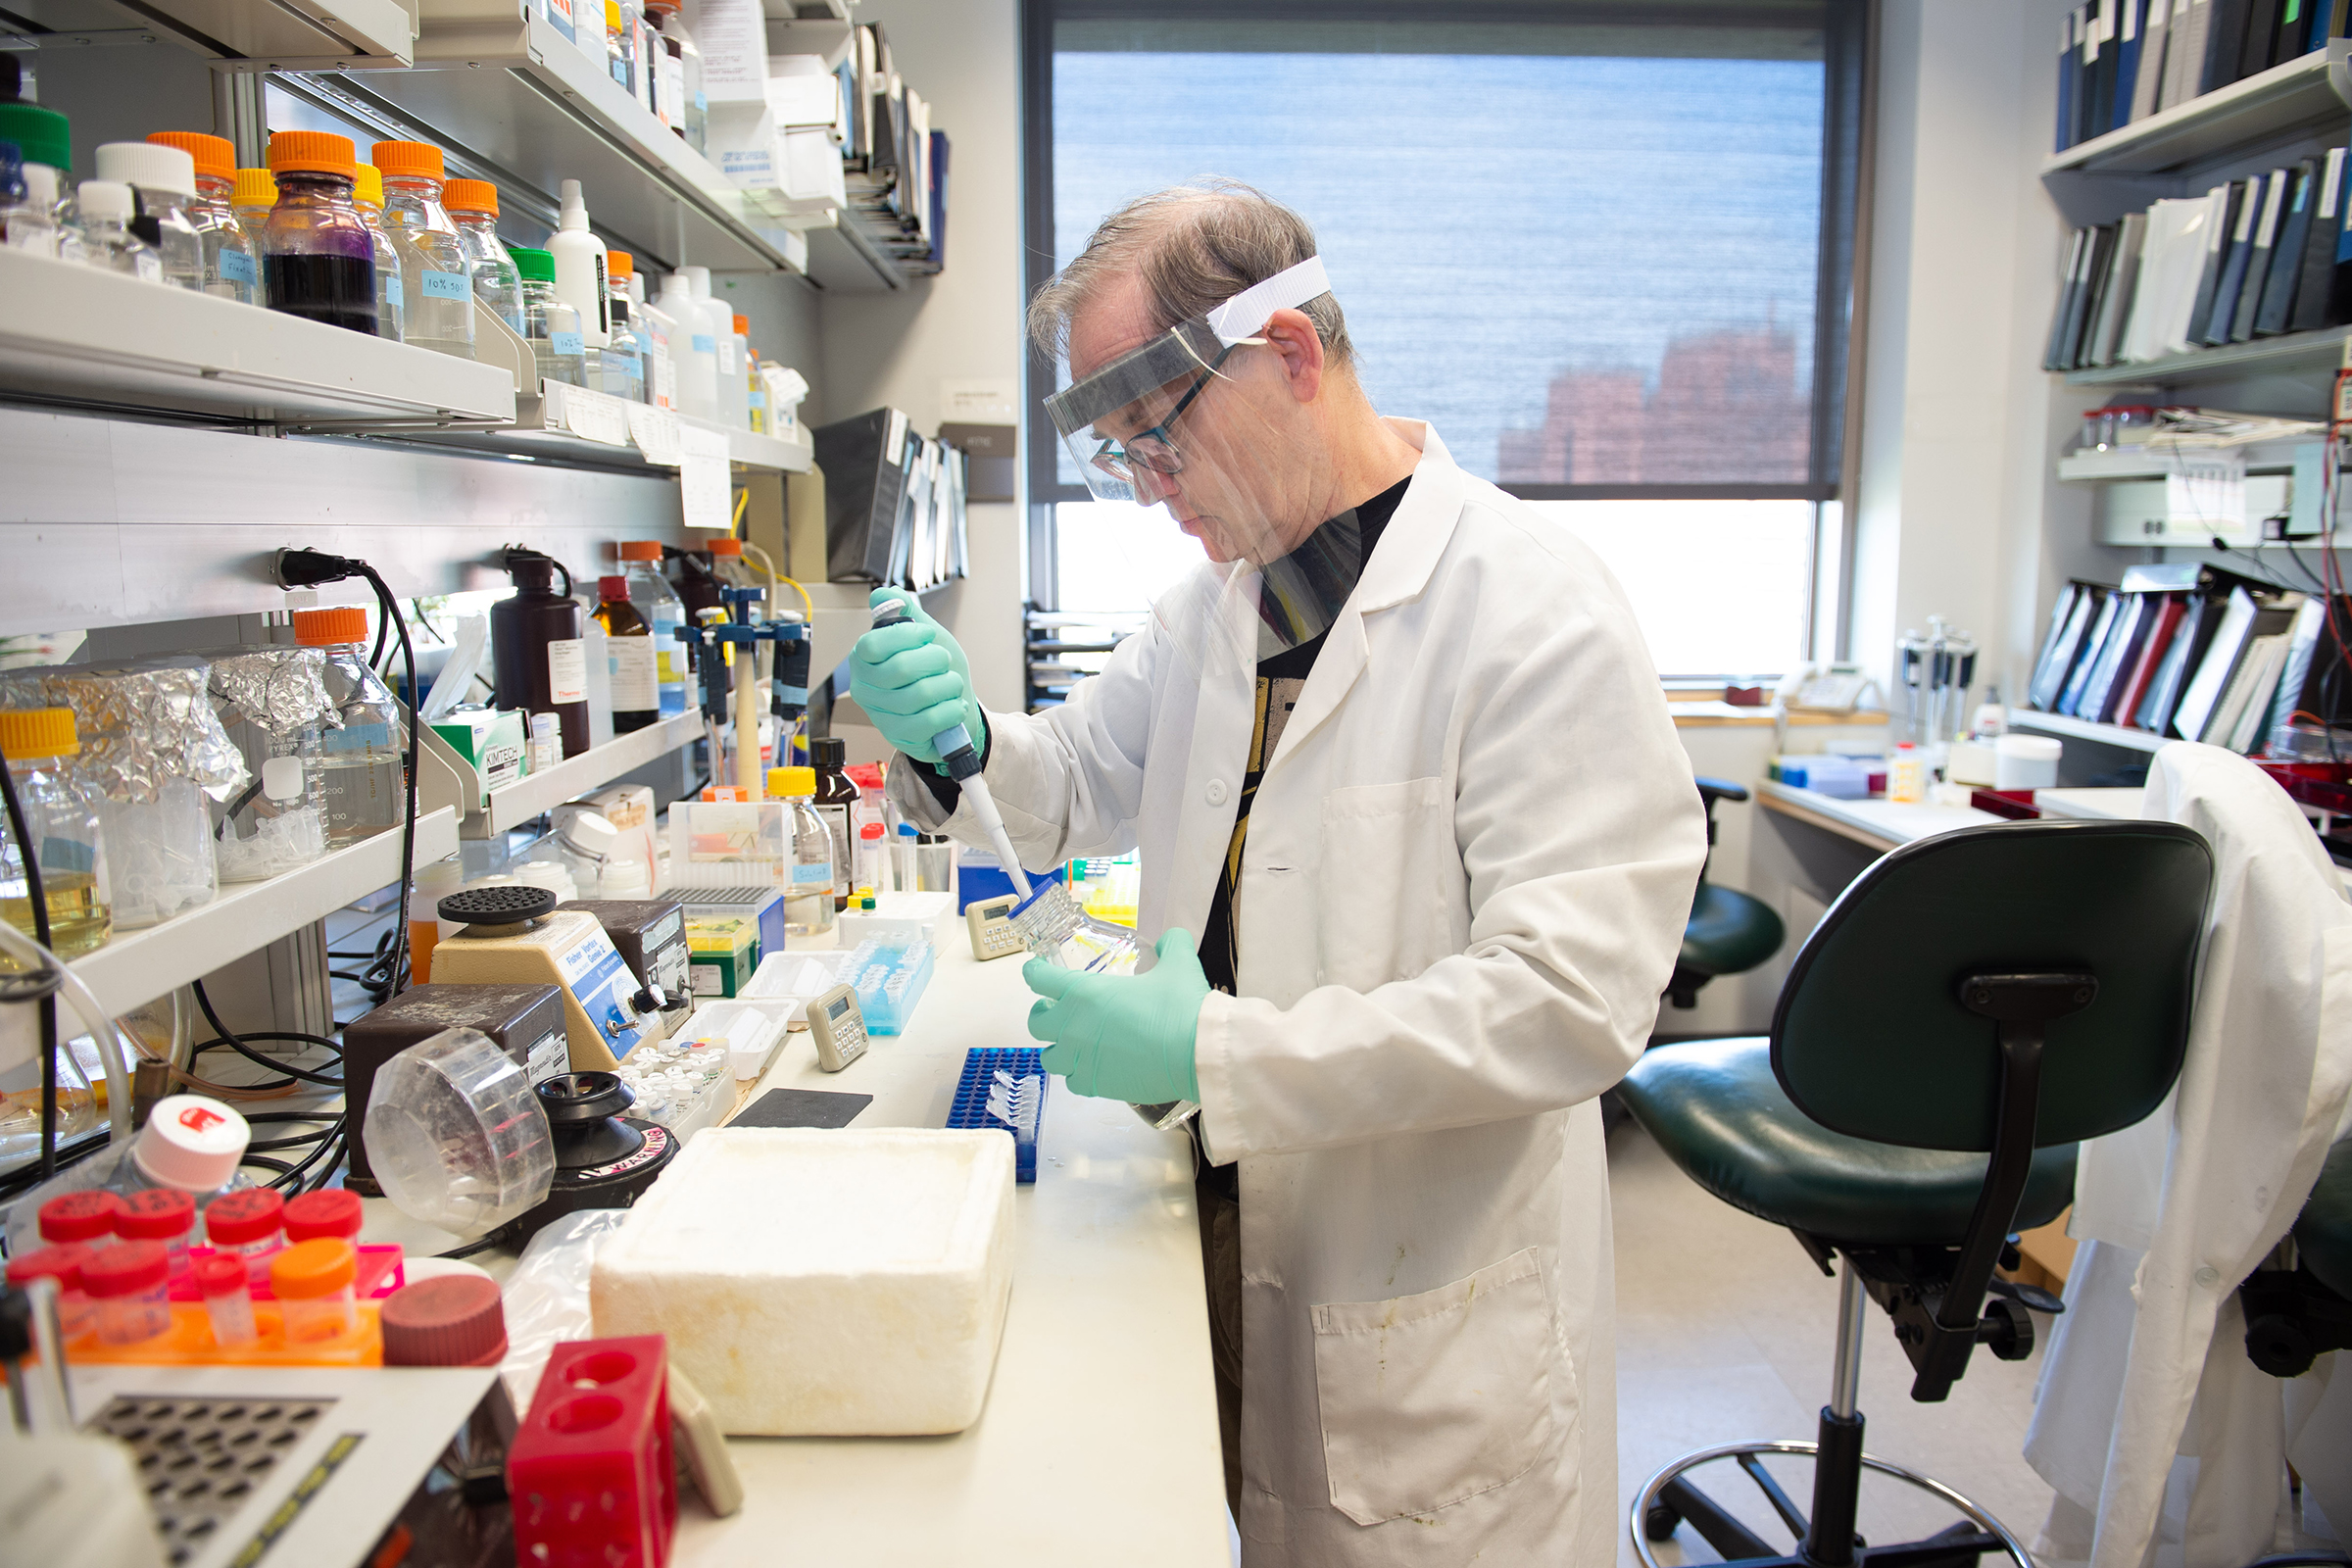 Research specialist Charles Searby prepares coronavirus RNA from saliva samples for quantitative RT-PCR (reverse transcription-polymerase chain reaction), a lab method used to detect the presence of a pathogen.